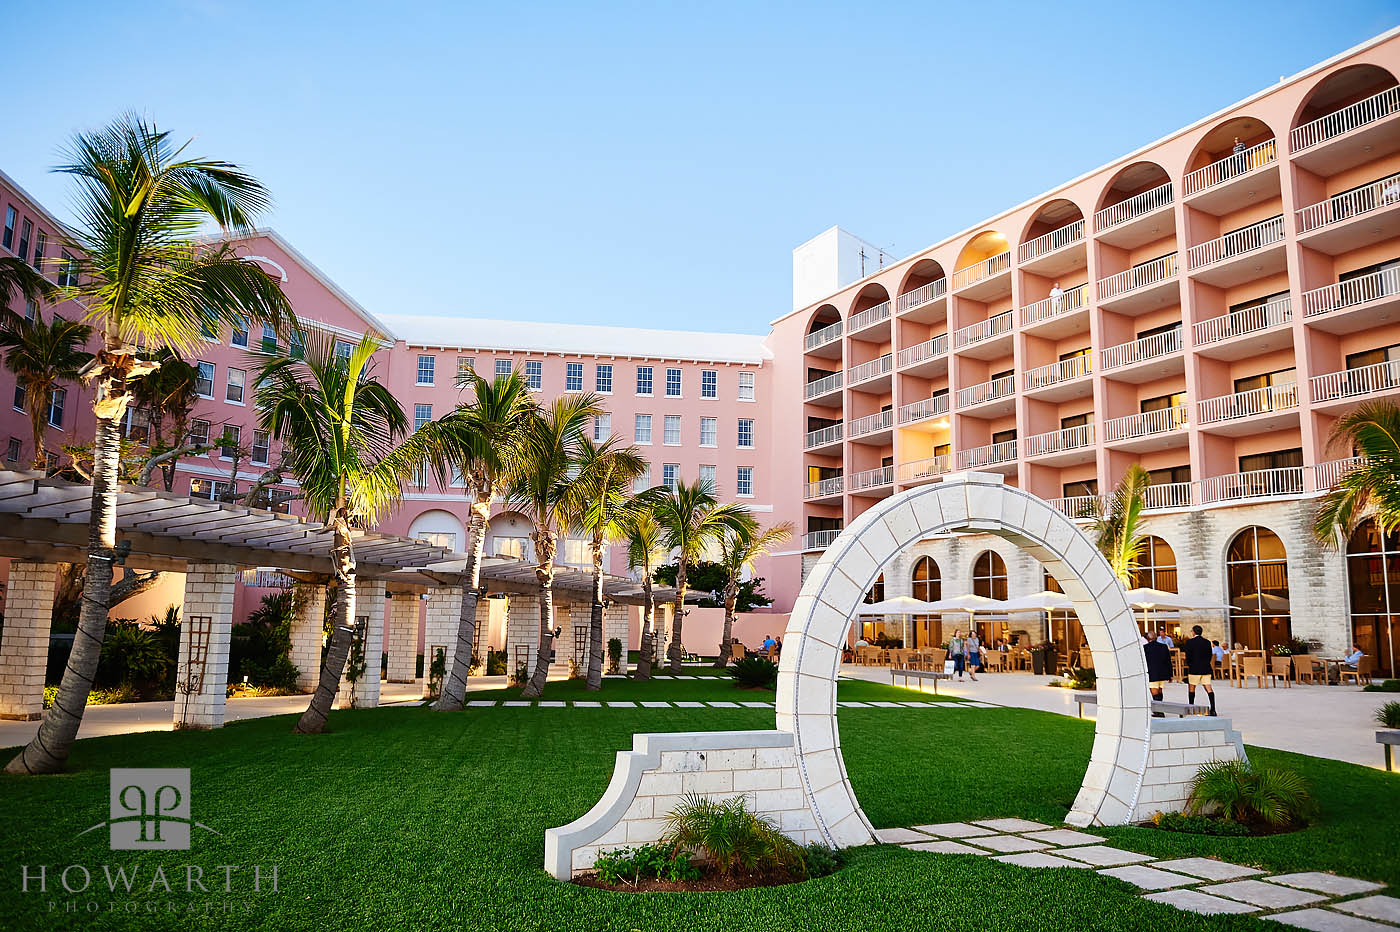 Located on the grounds of The Hamilton Princess & Beach Club Hotel